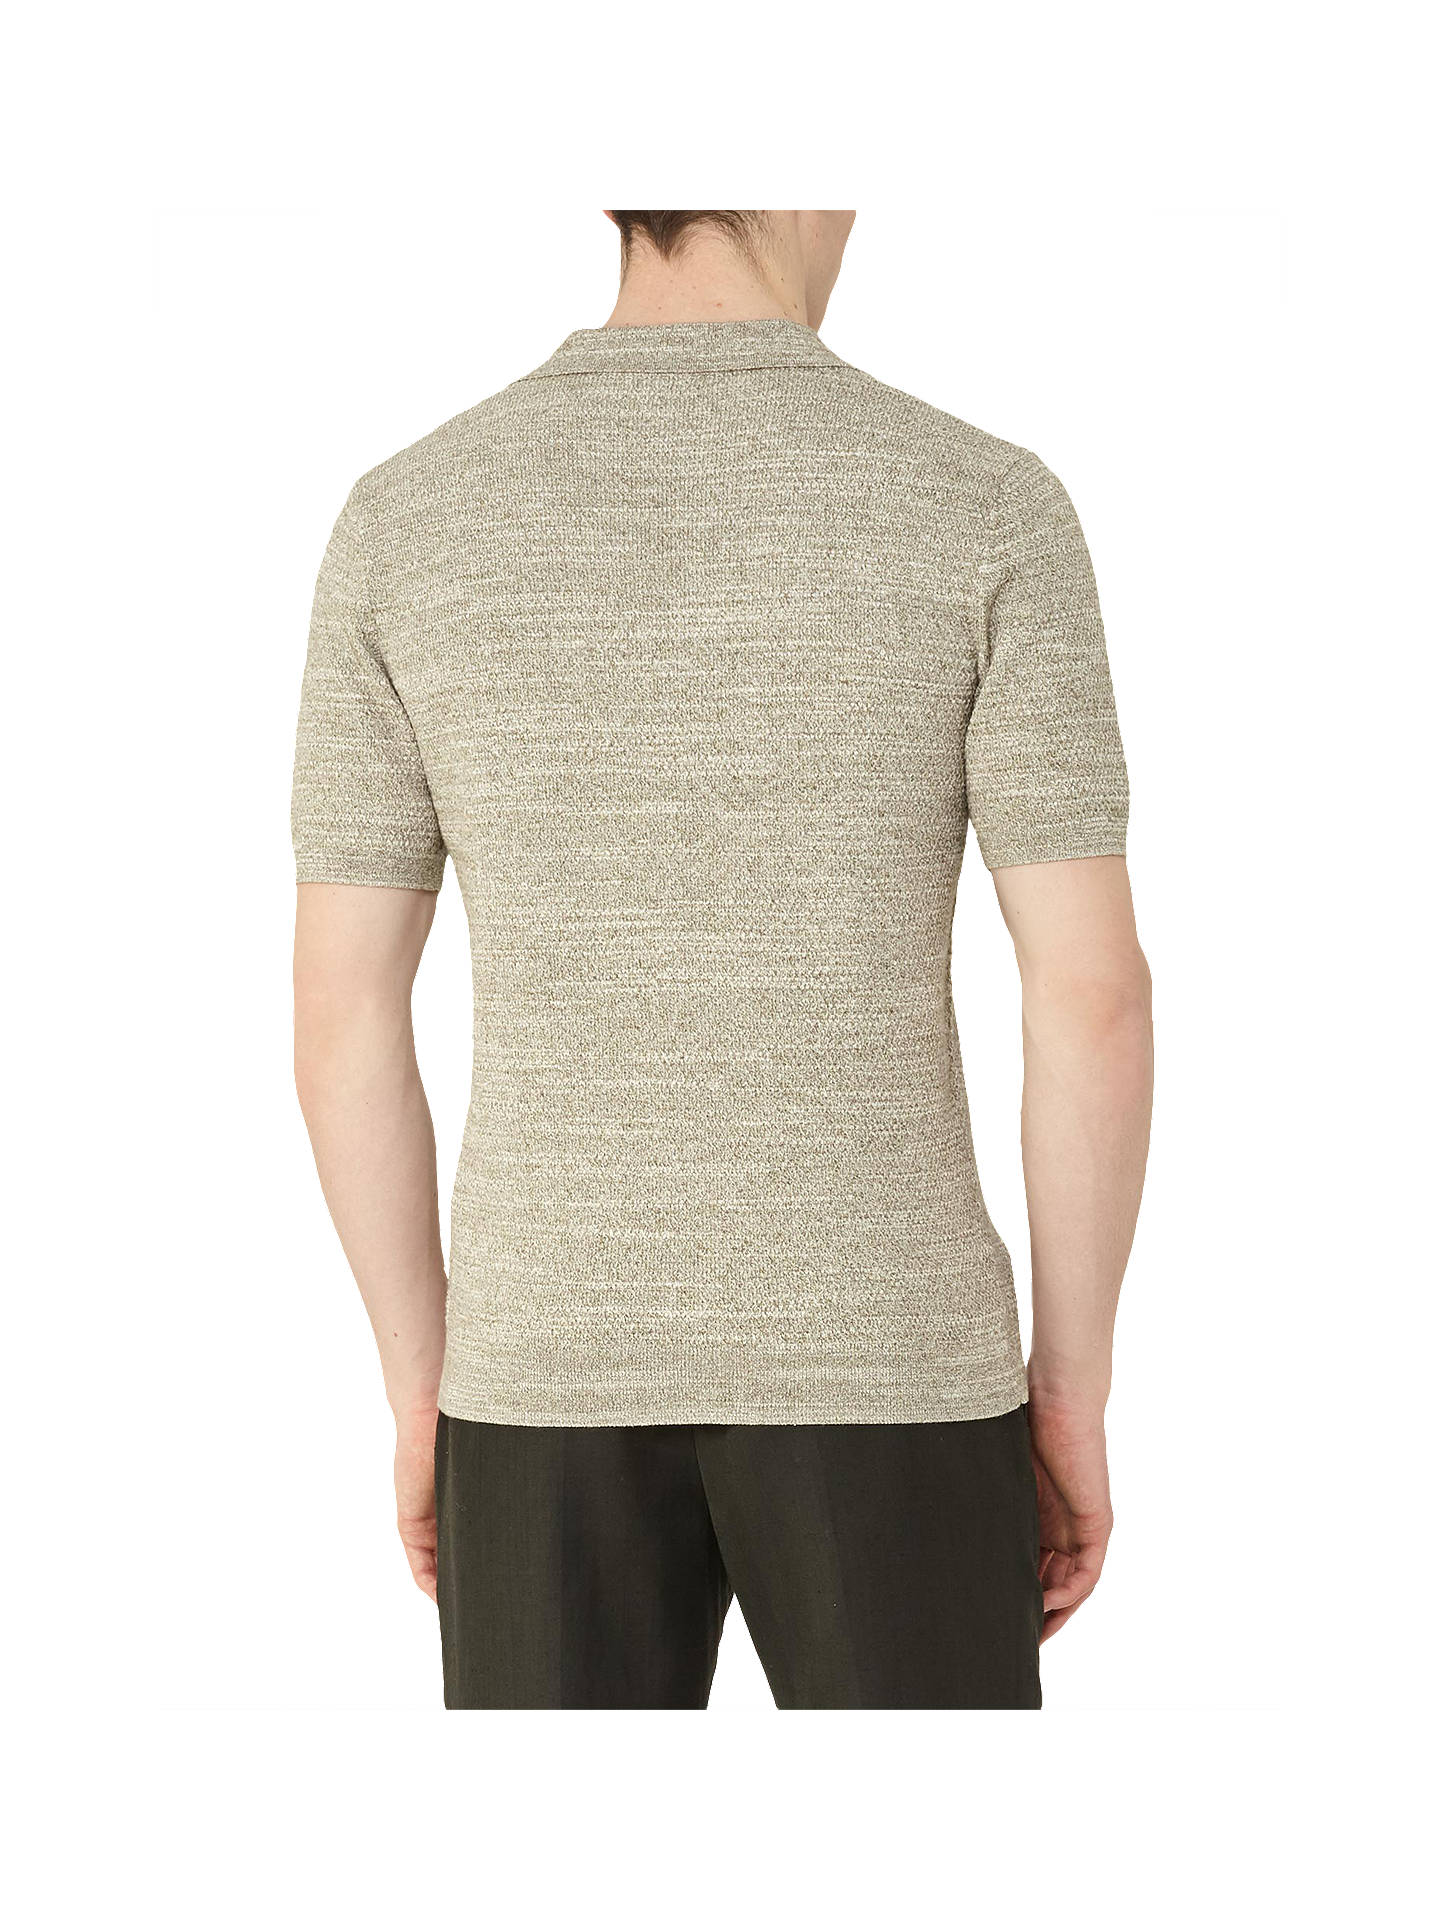 BuyReiss Rashford Textured Polo Shirt, Sage, XS Online at johnlewis.com